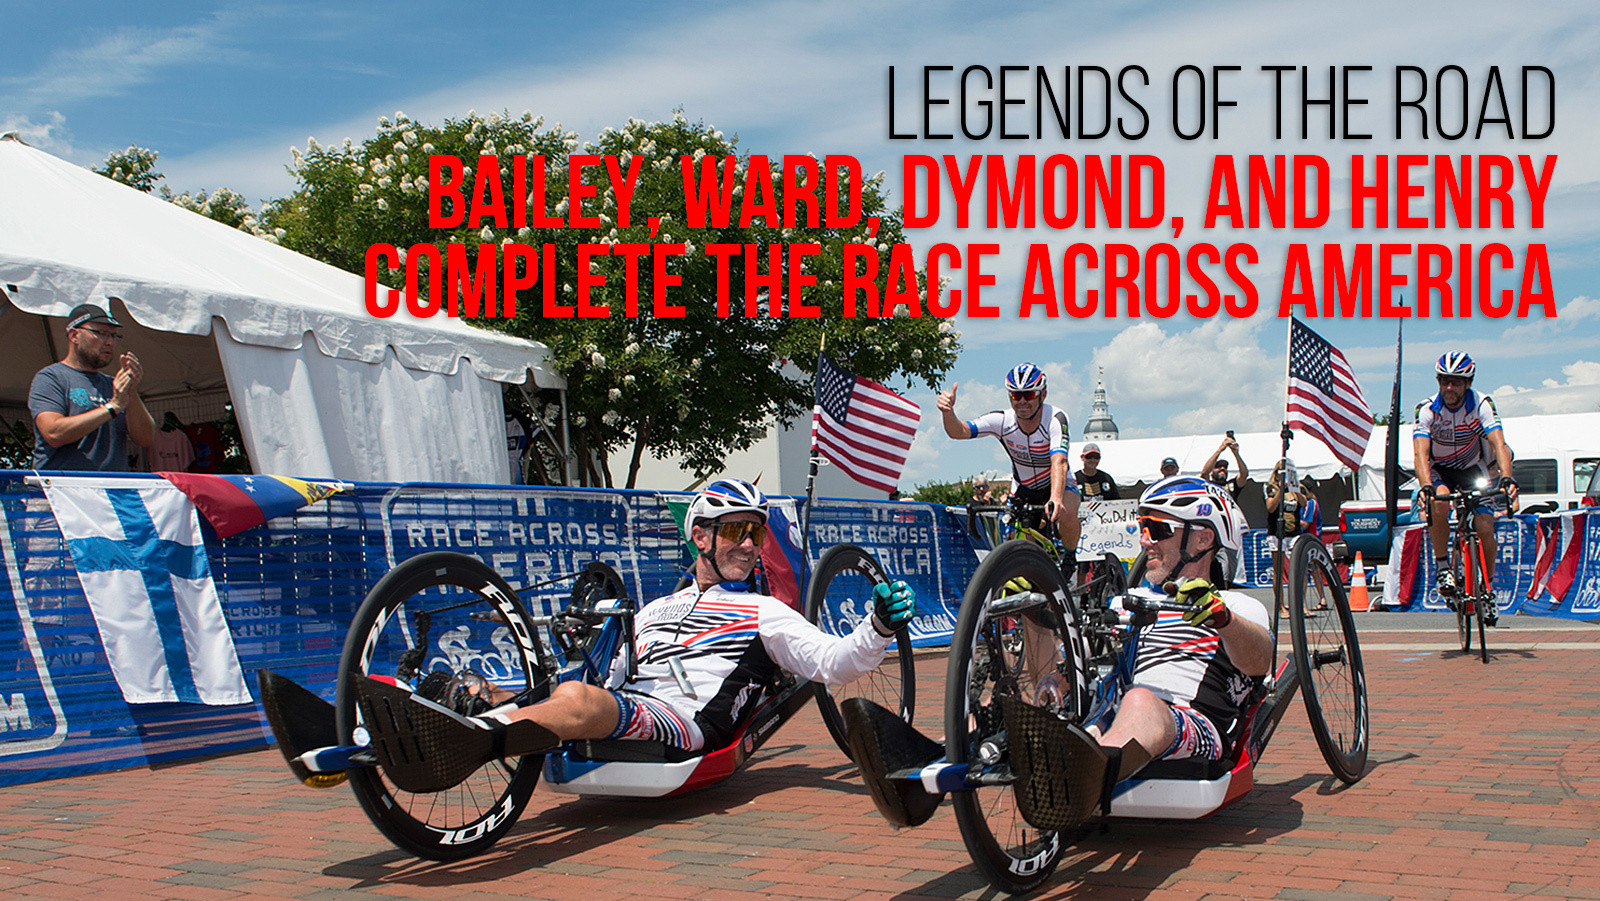 Bailey, Ward, Dymond, and Henry Complete The Race Across America